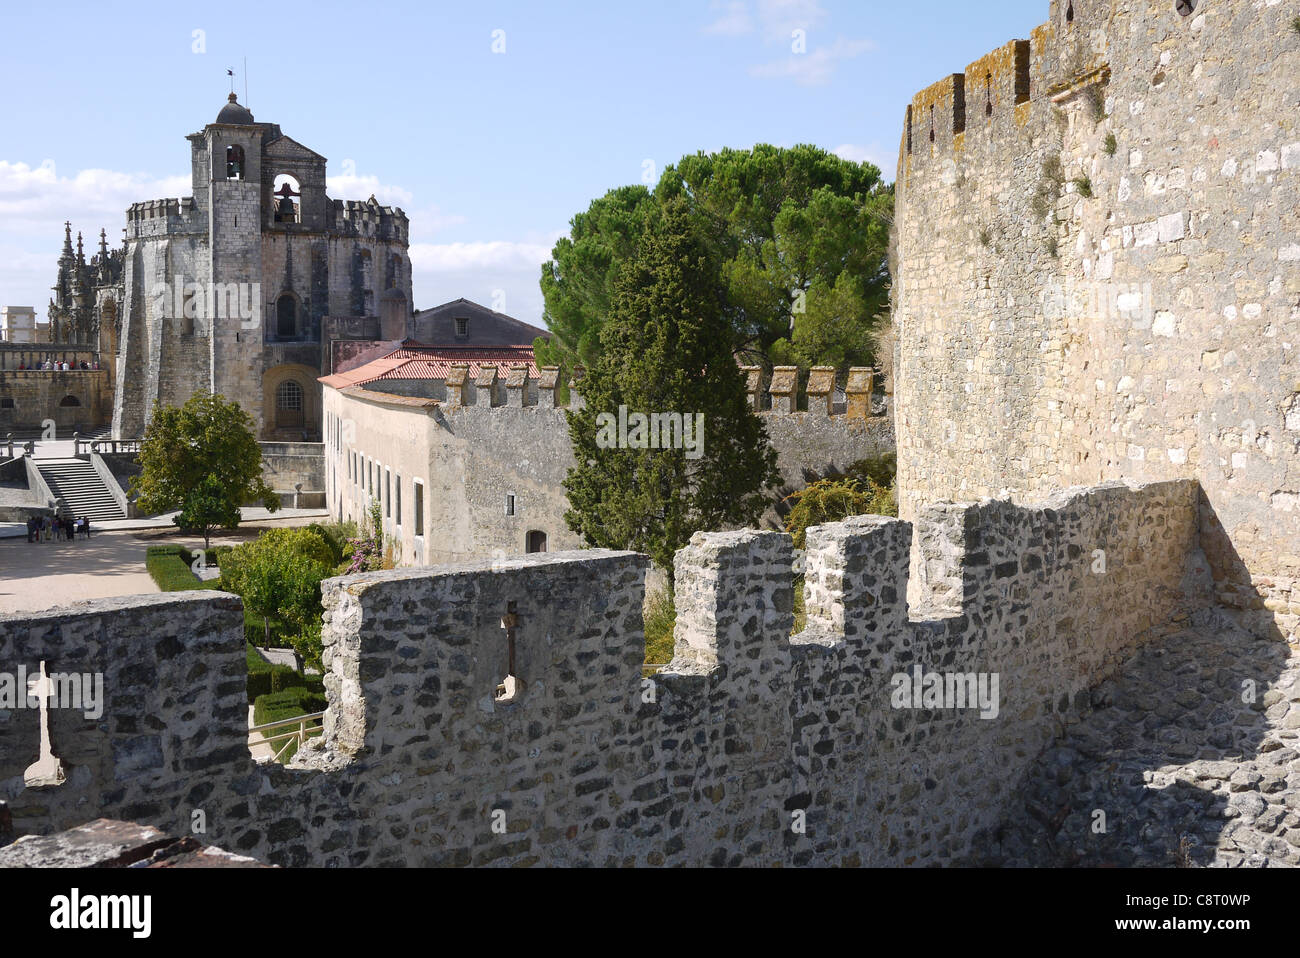 The round church of the Knights Templar at the Convento do Cristo,Tomar, Portugal, from the walls of the crusader - Stock Image